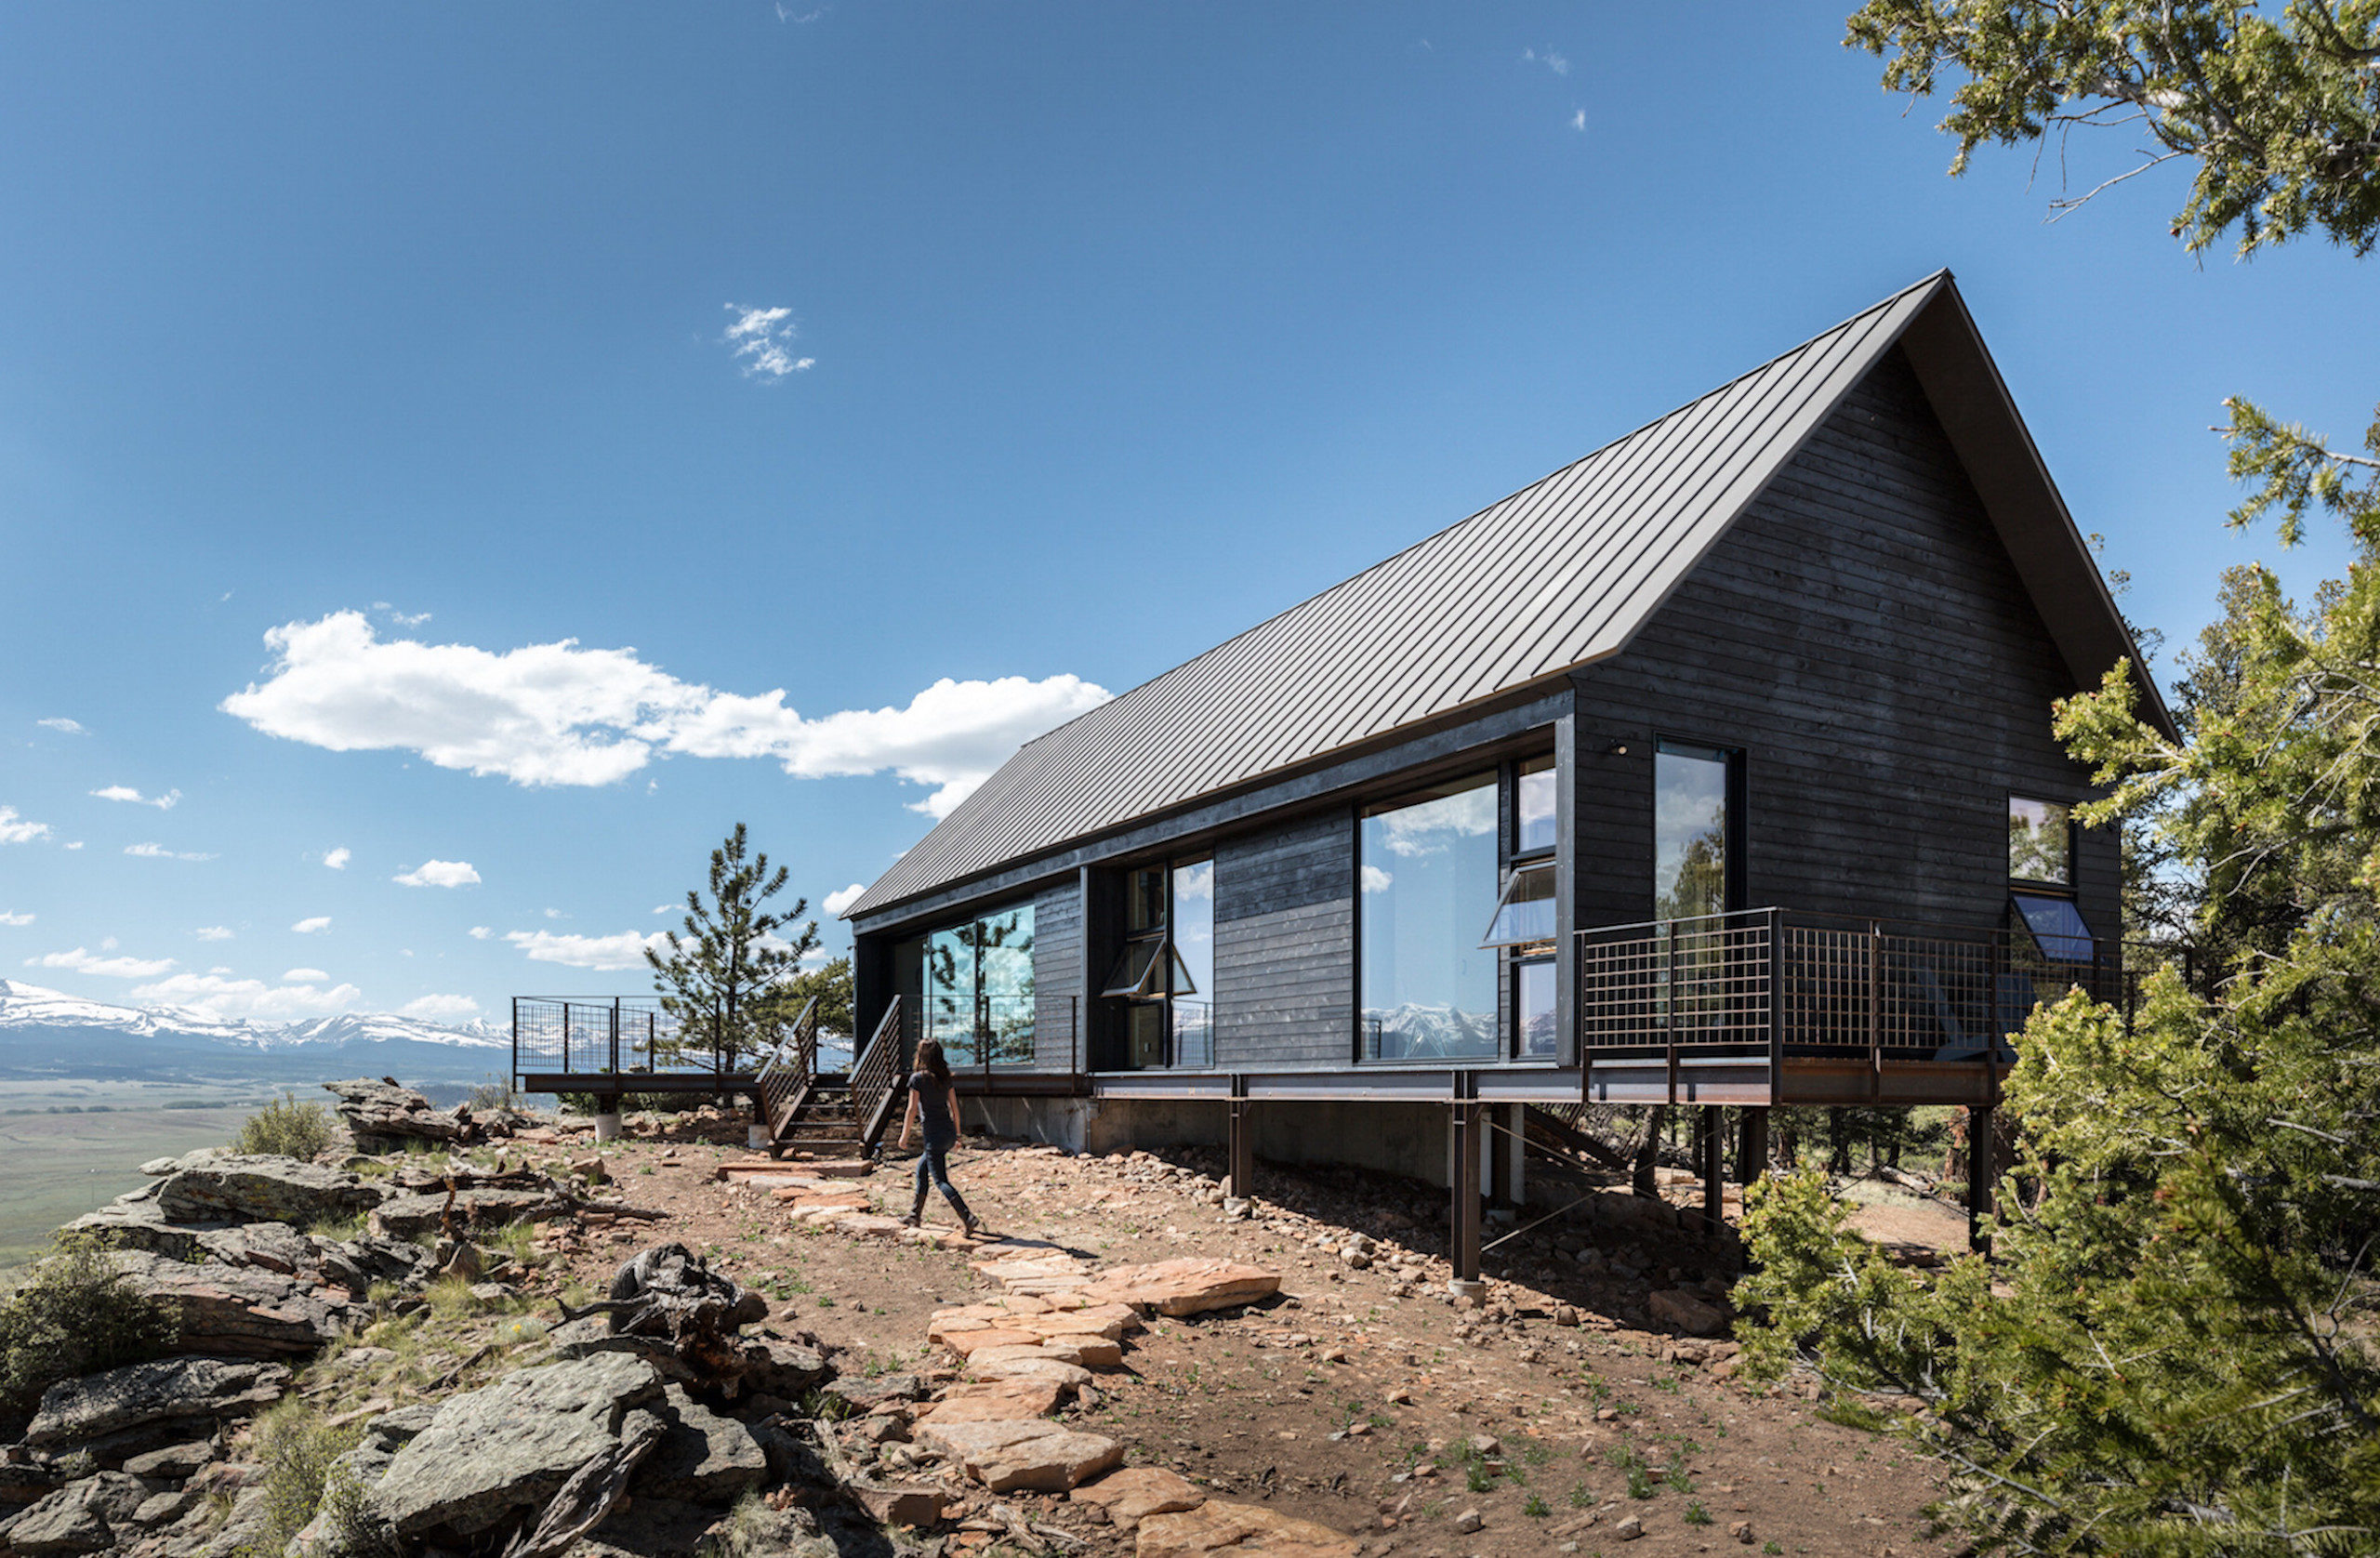 Exterior view of Big Cabin | Little Cabin by Renée del Gaudio Architecture.